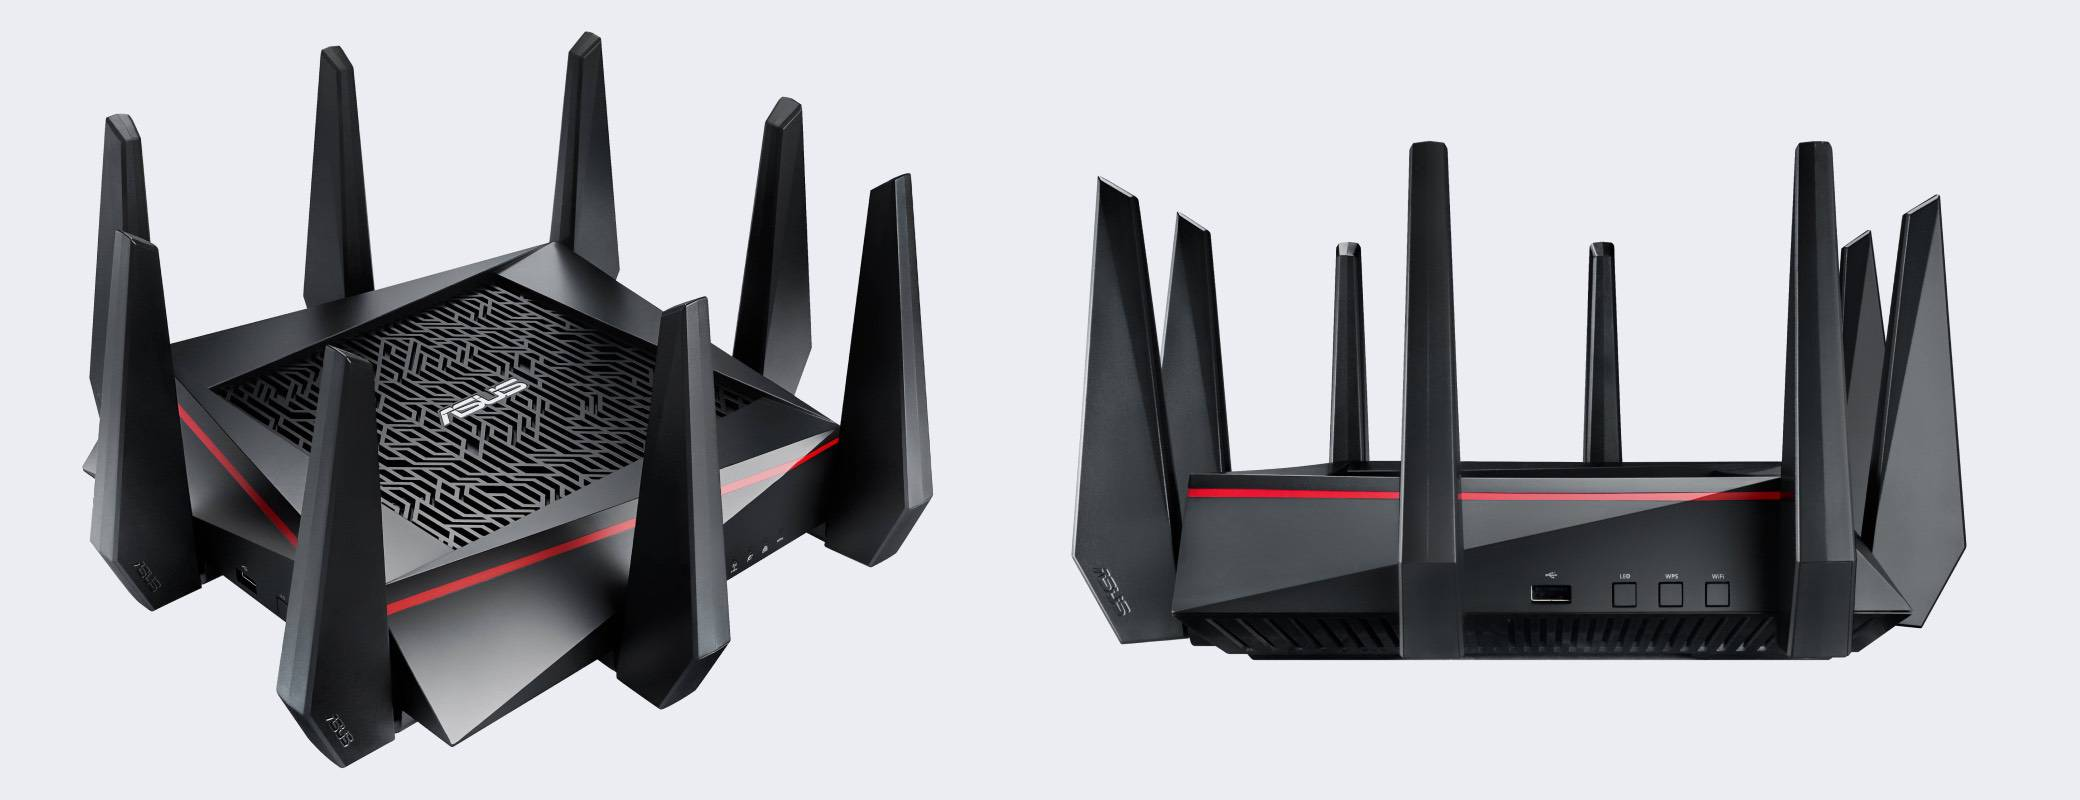 asus-rt-ac5300-router image